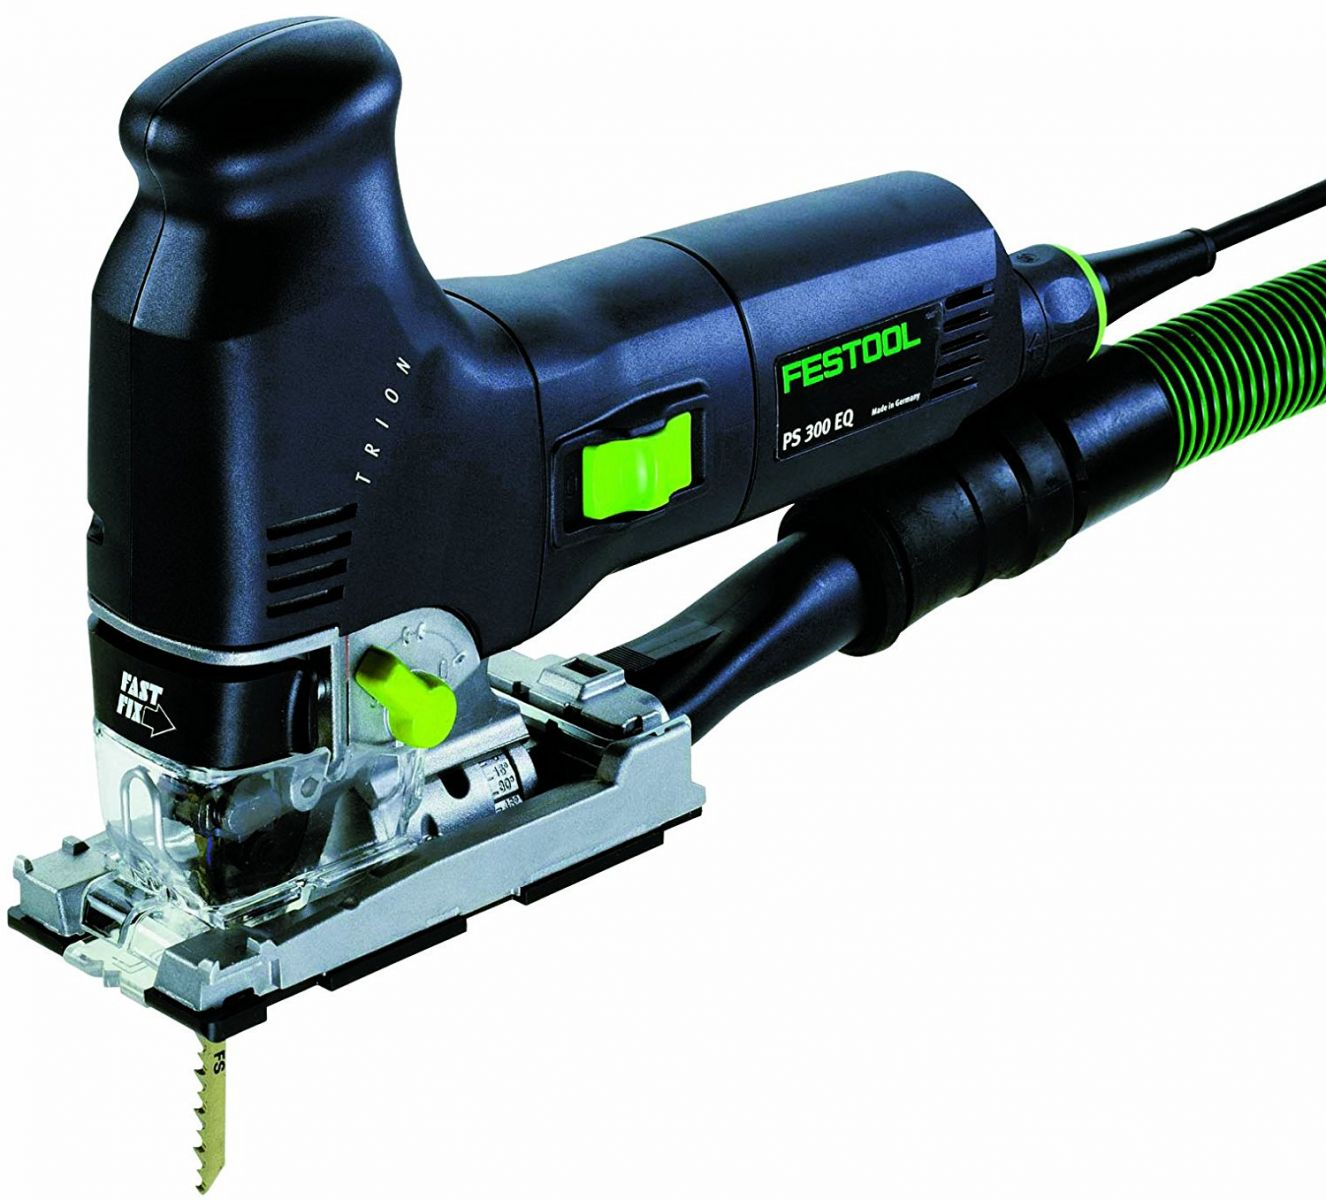 Festool PS 300 EQ Jigsaw